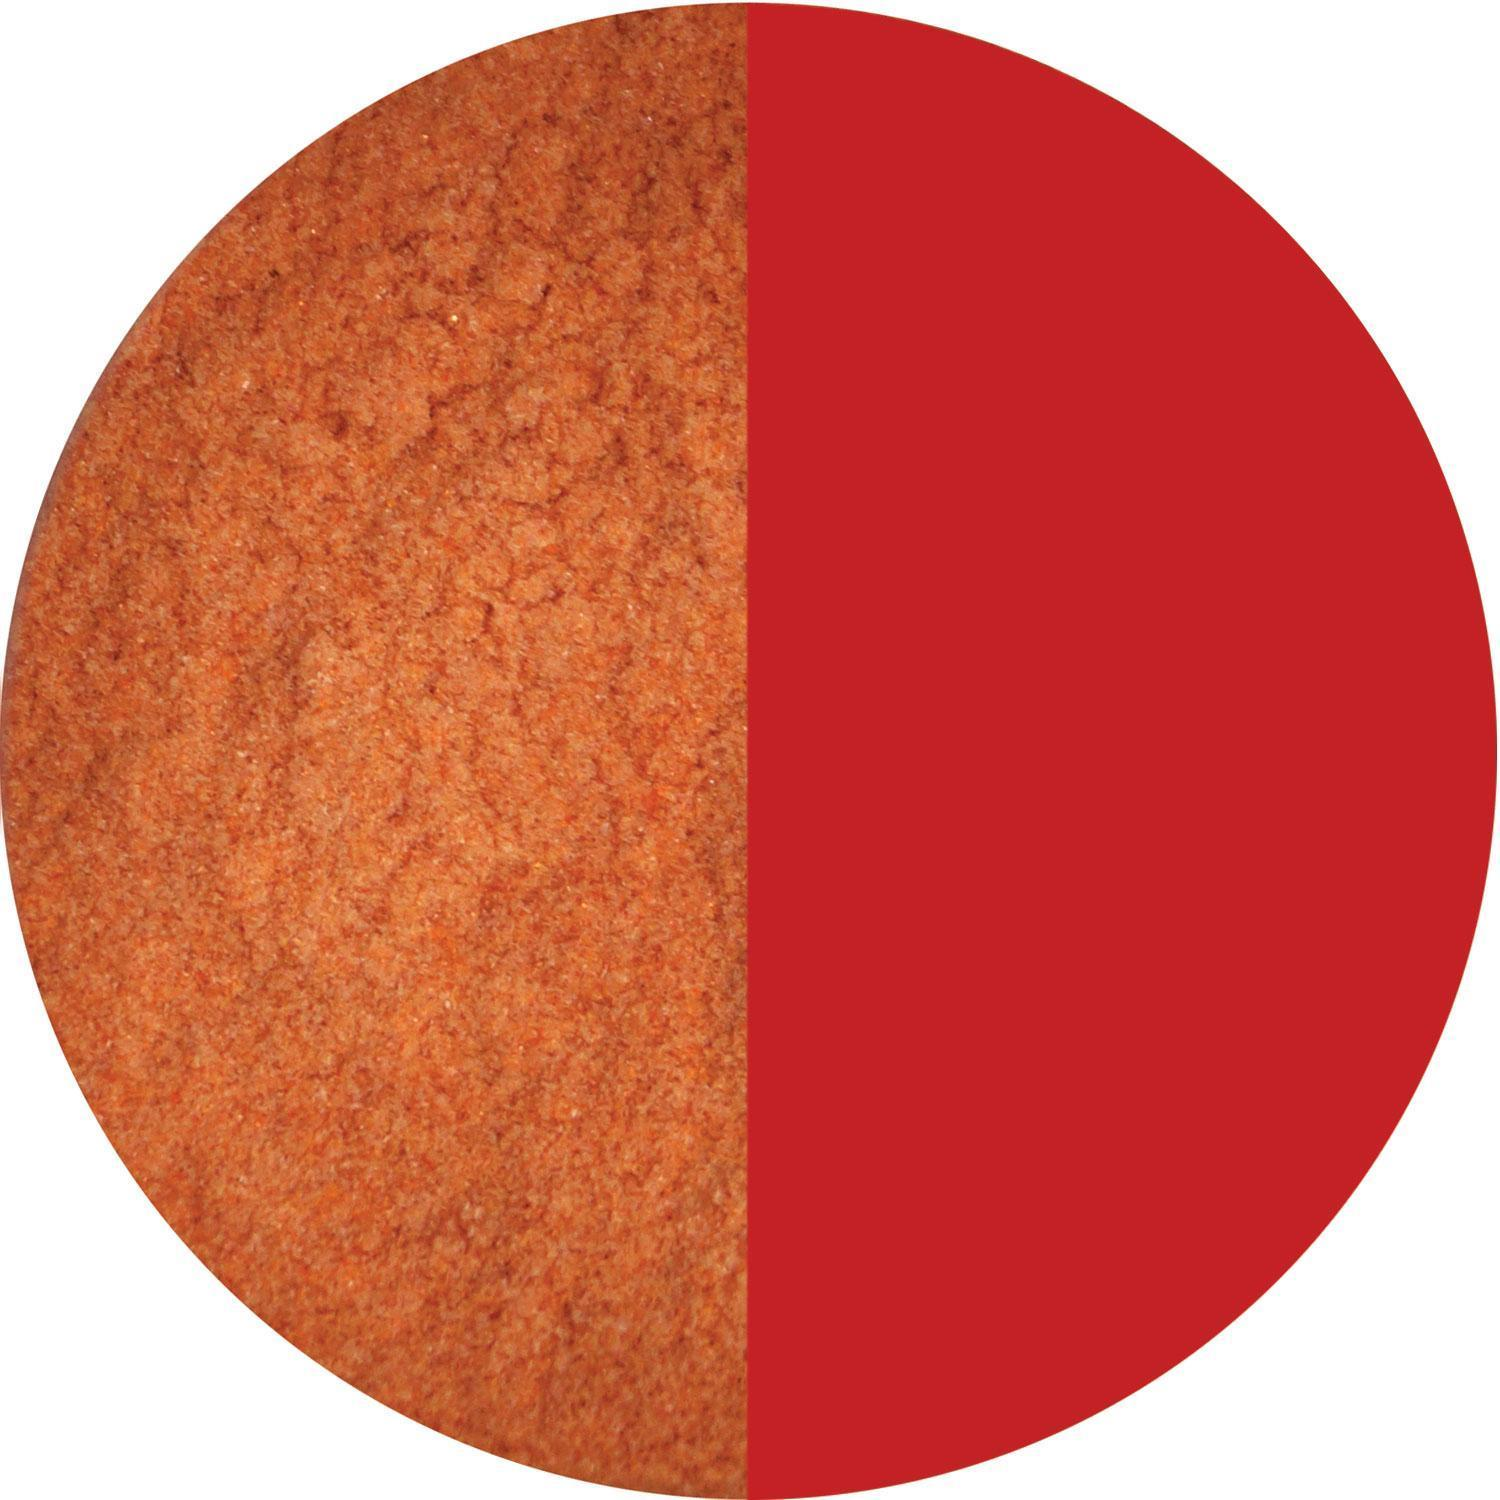 8.5 oz Red Opal Powder Frit - 96 COE